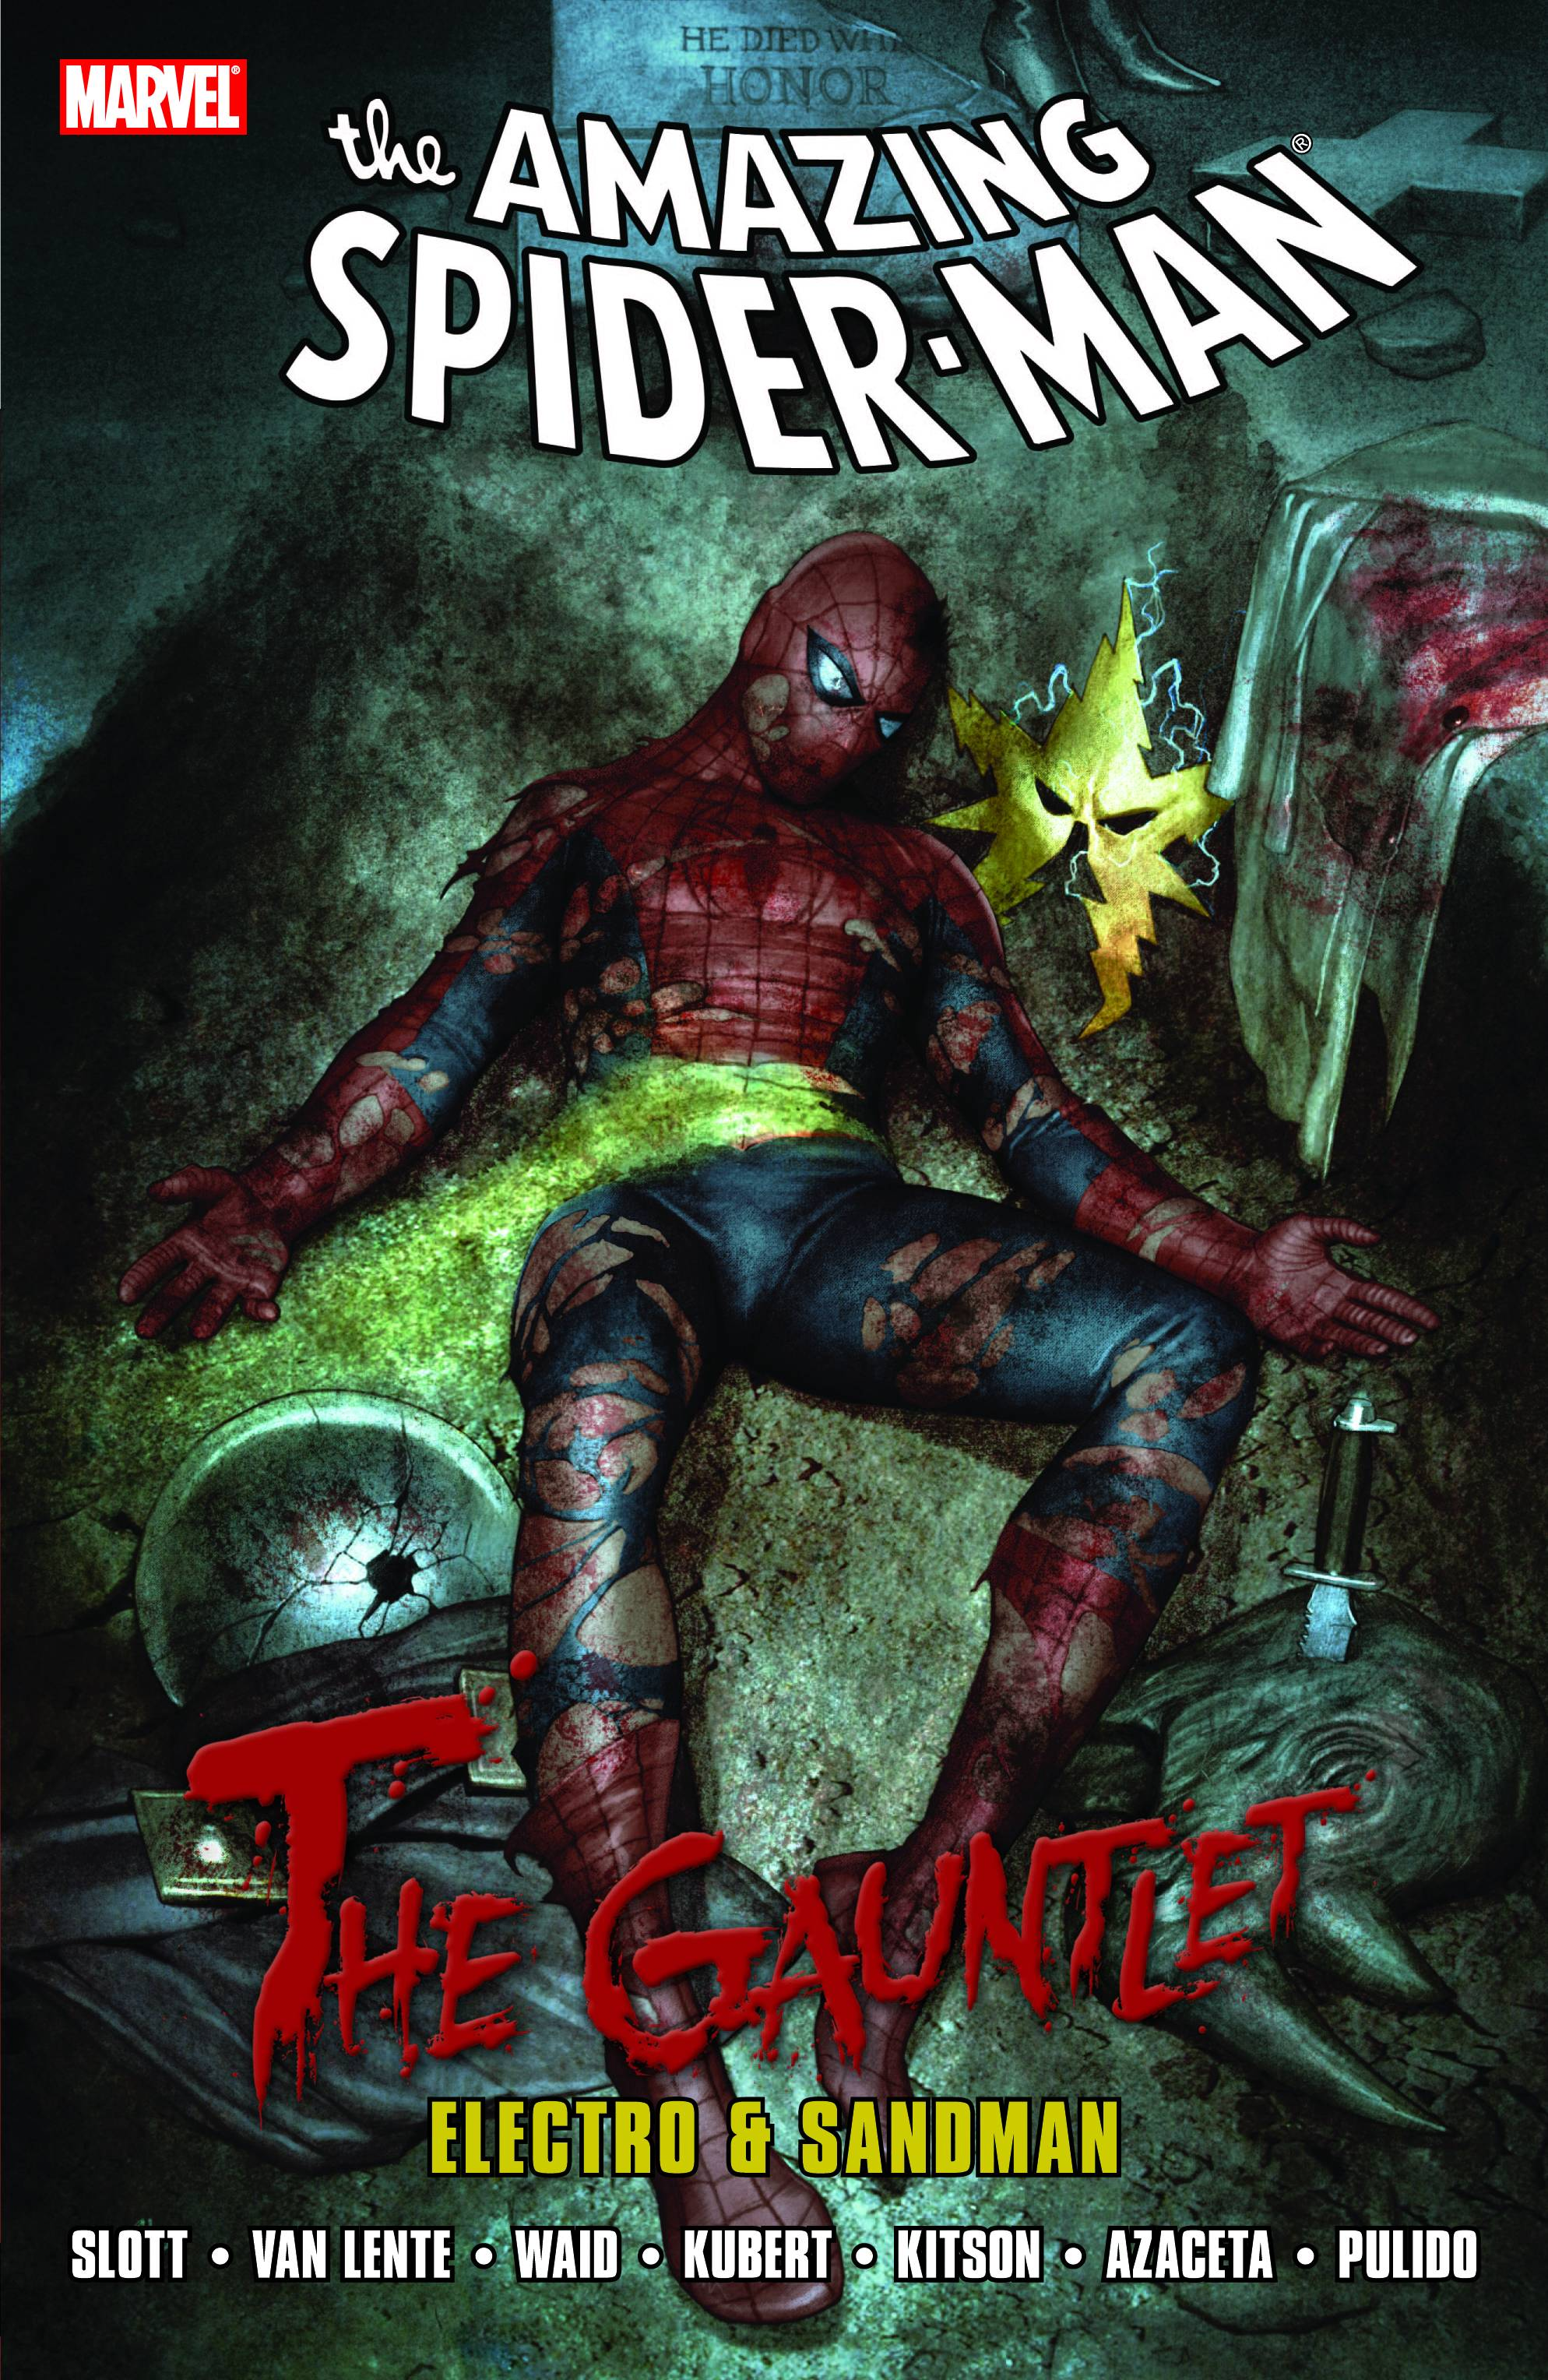 Amazing Spider-Man: The Gauntlet Volume 1 (Electro & Sandman) TP